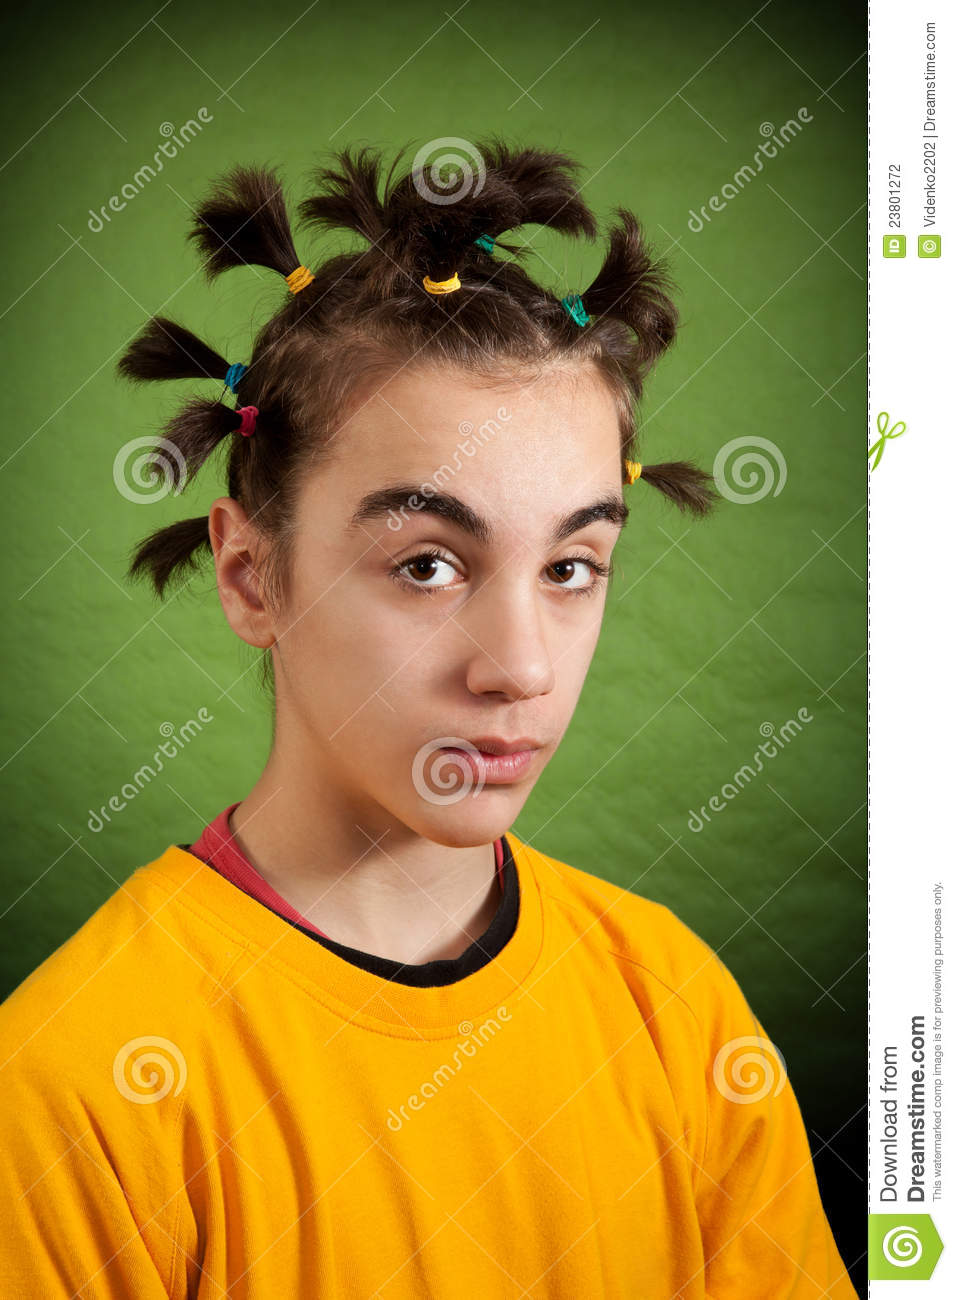 My New Hairstyle Stock Photography  Image 23801272